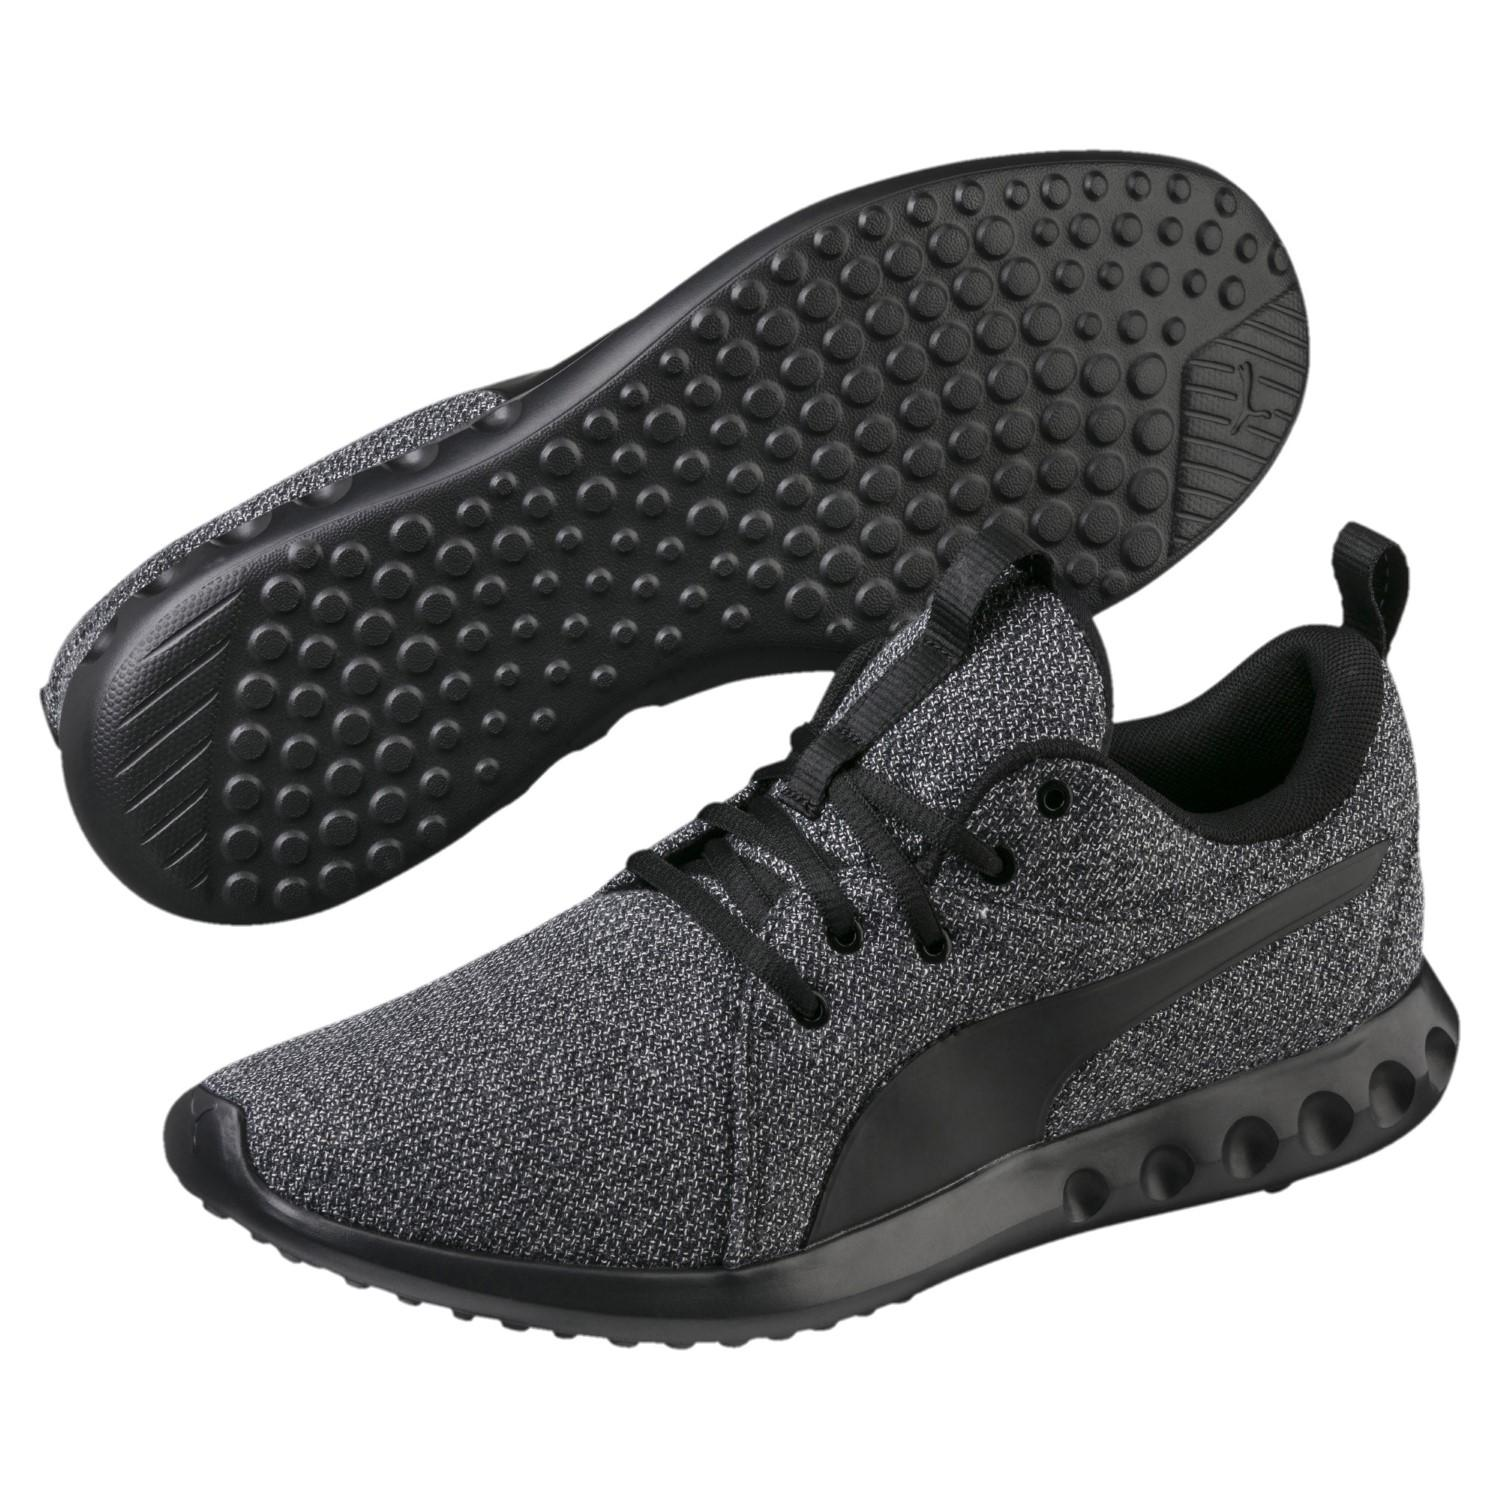 4d75505890da42 Lyst - PUMA Carson 2 Knit Training Shoes in Black for Men